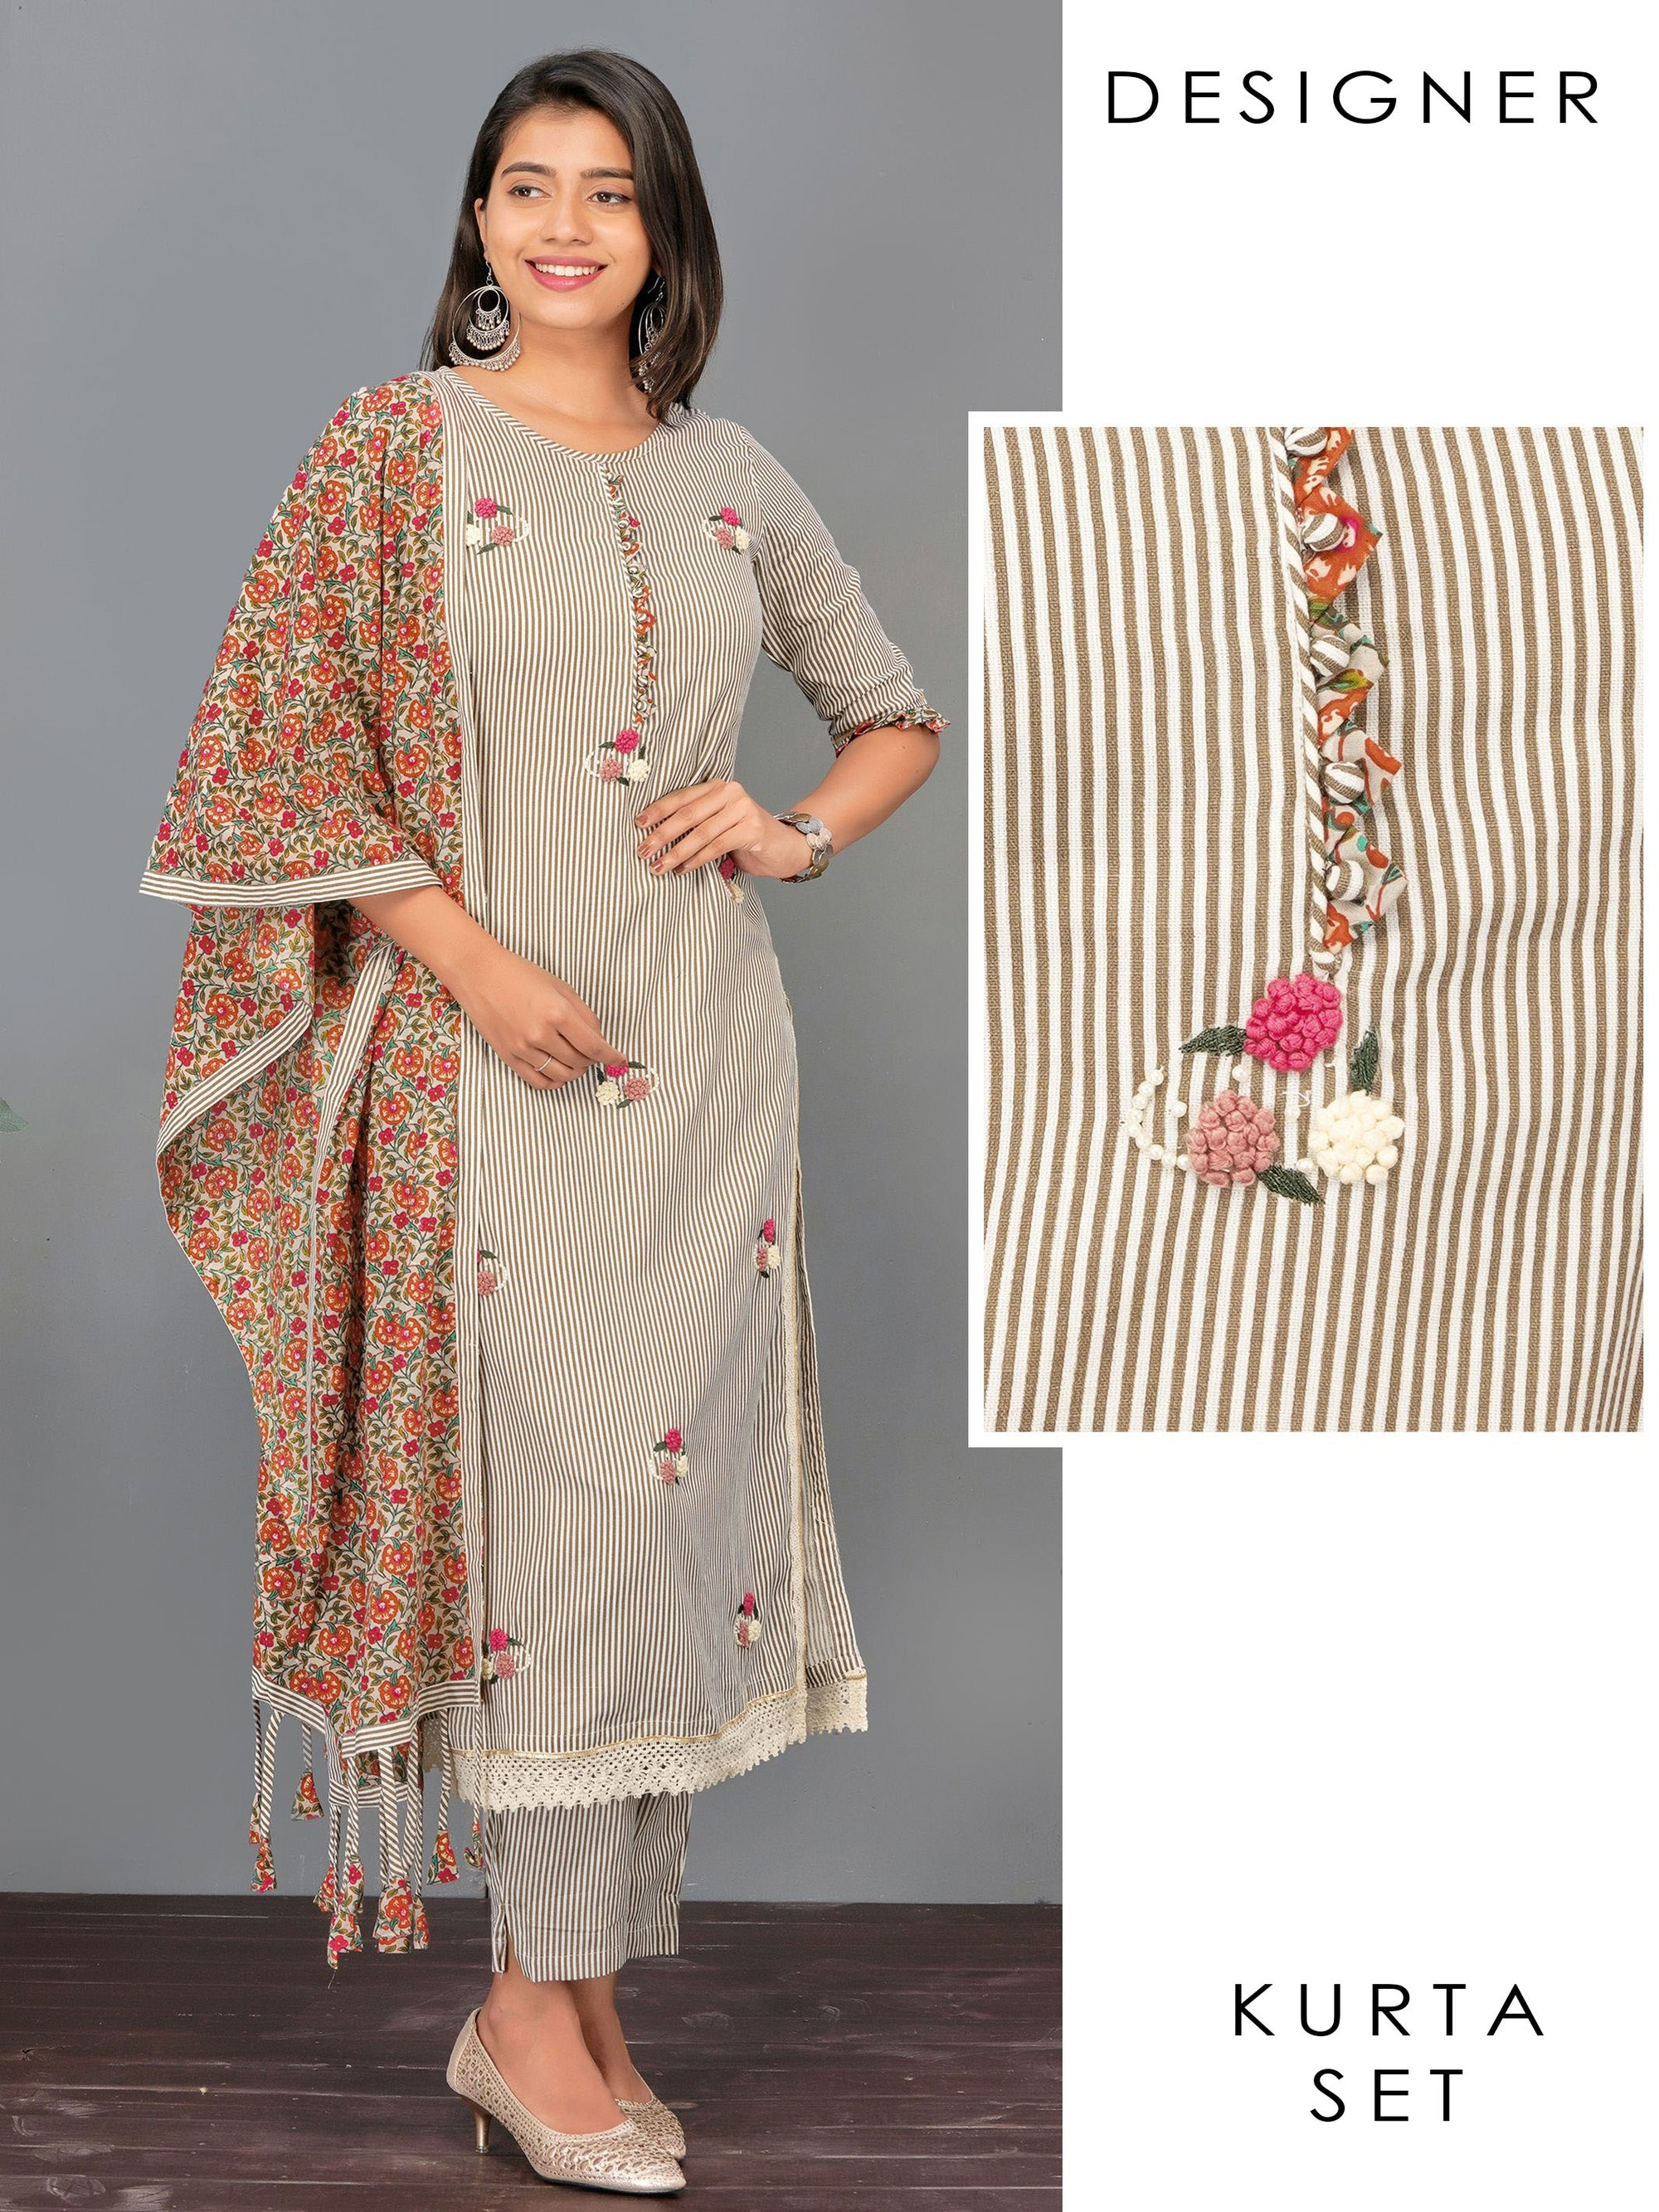 French Knot Floral Embroidered Kurti, Bengal Striped Pant & Floral Dupatta Set